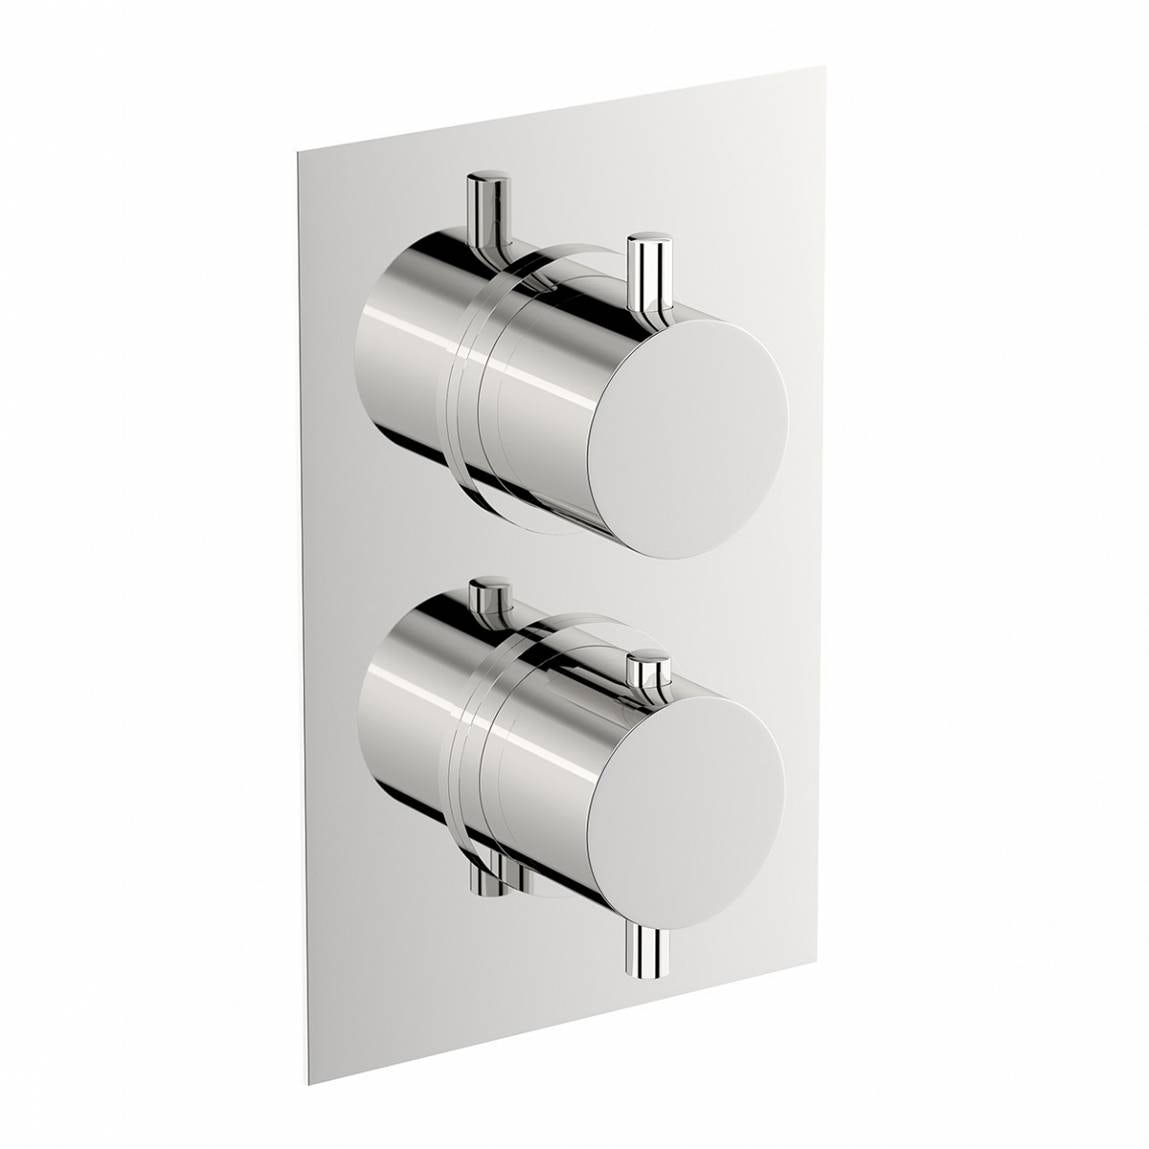 Mode Matrix square twin thermostatic shower valve